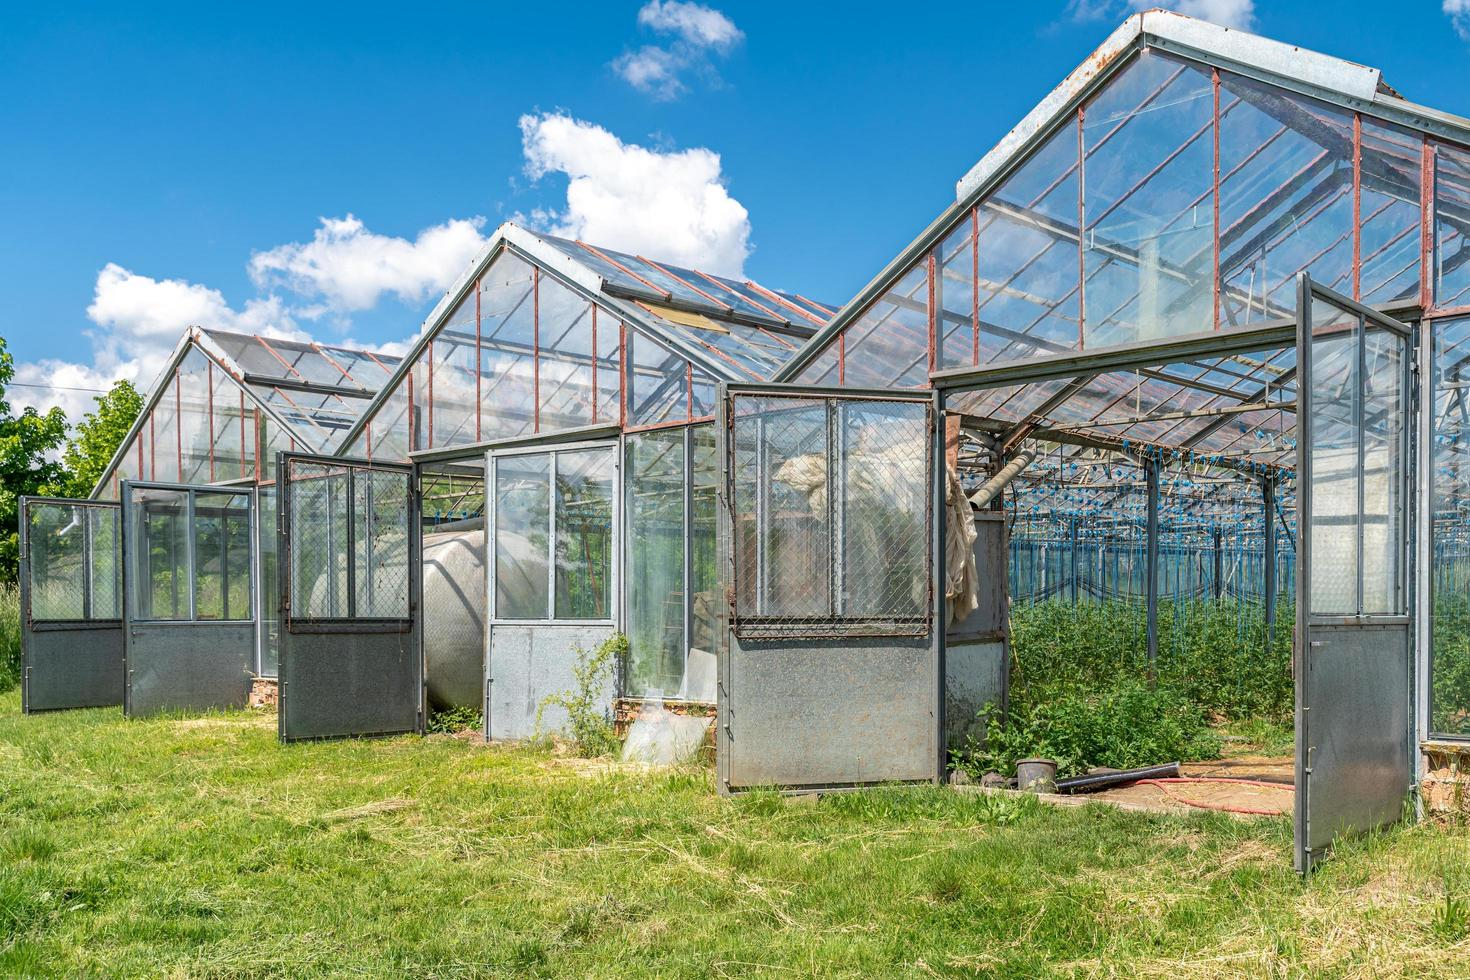 A row of greenhouses  photo